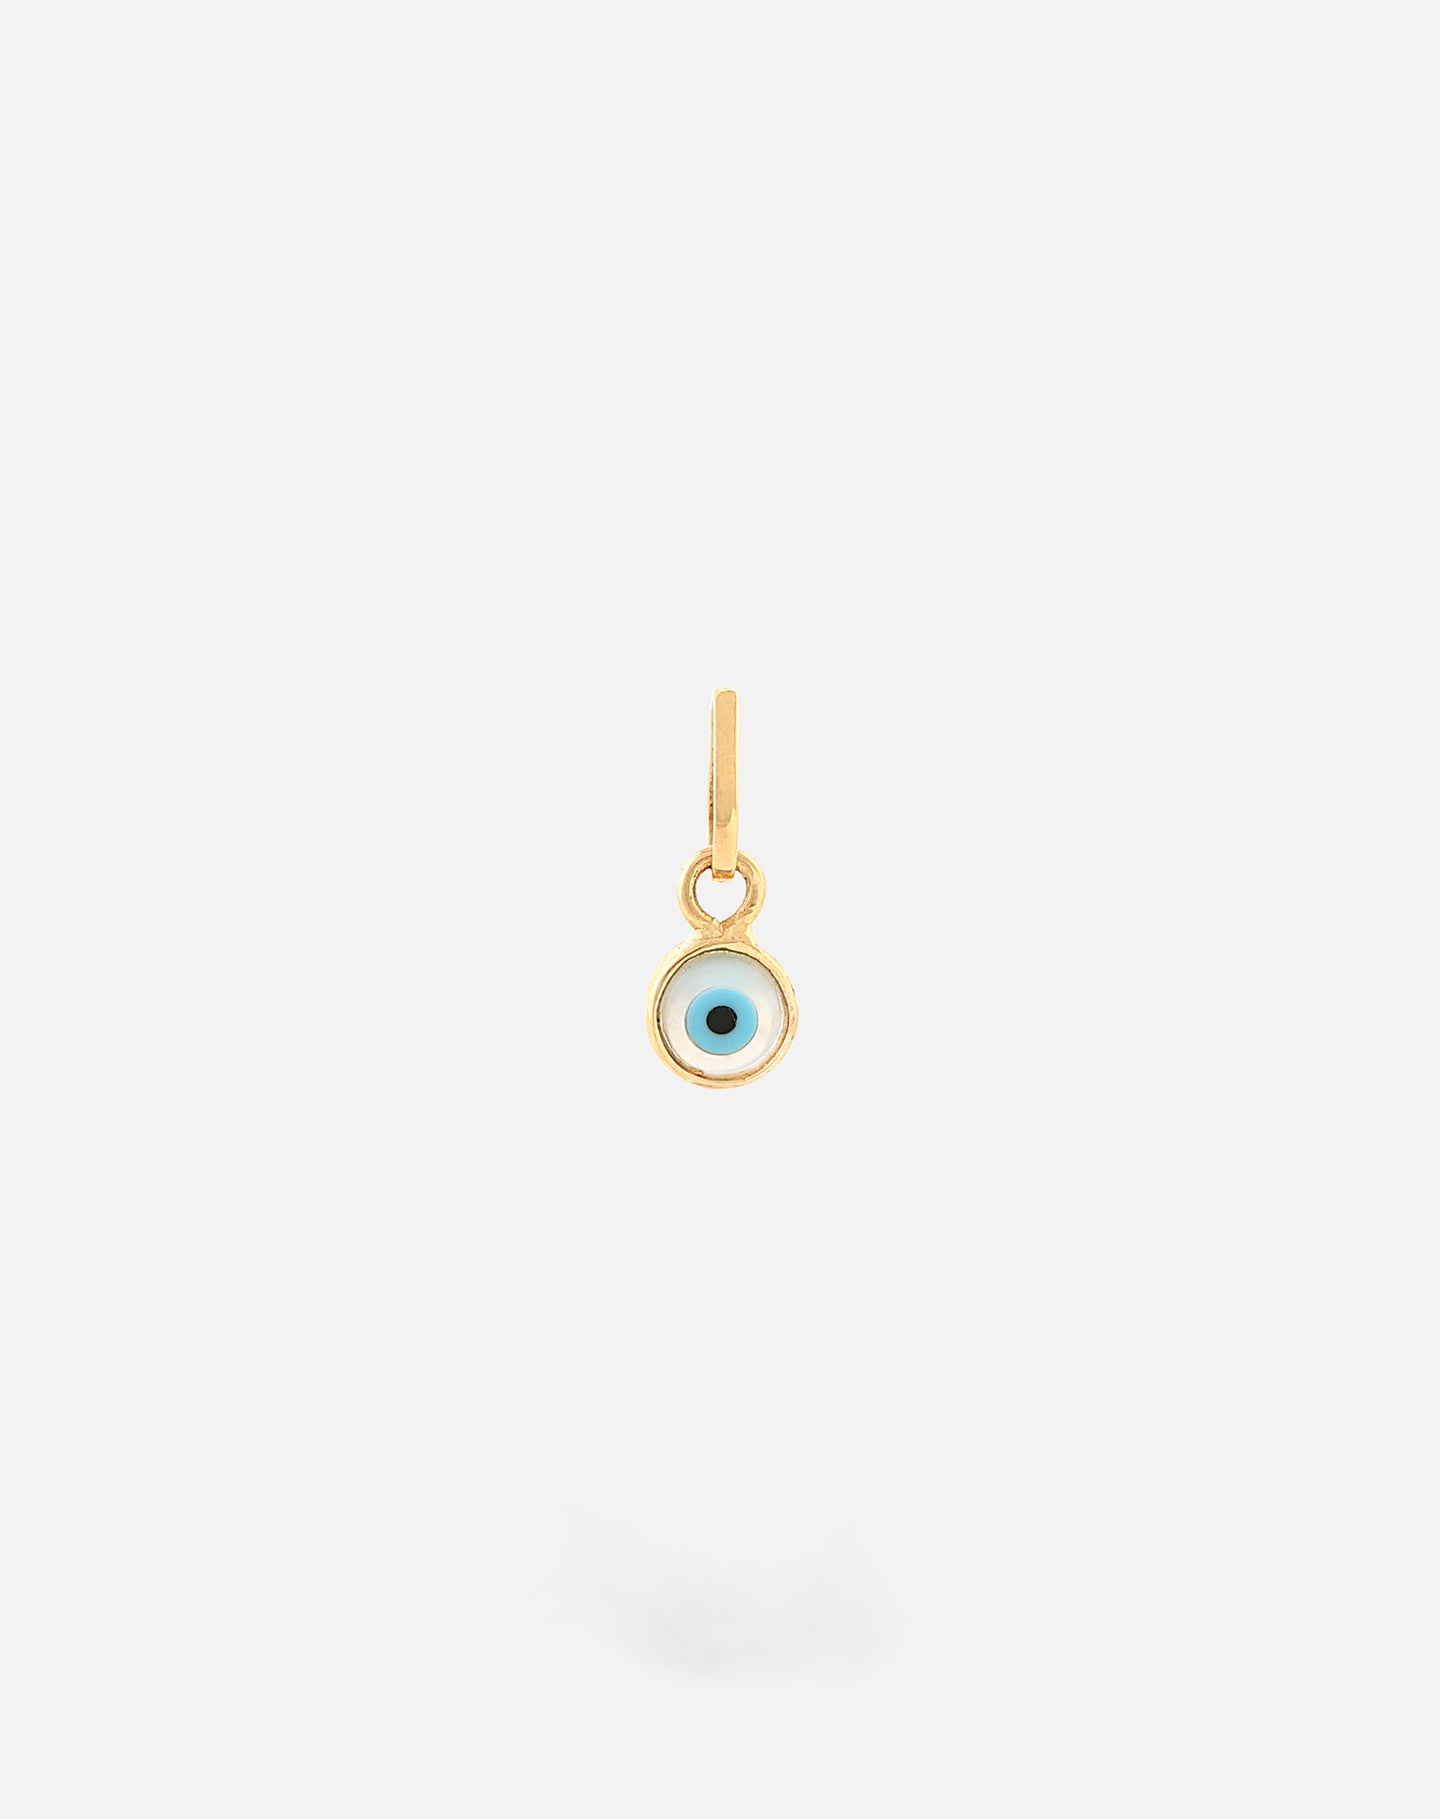 Gold Evil Eye Charm - Round Small